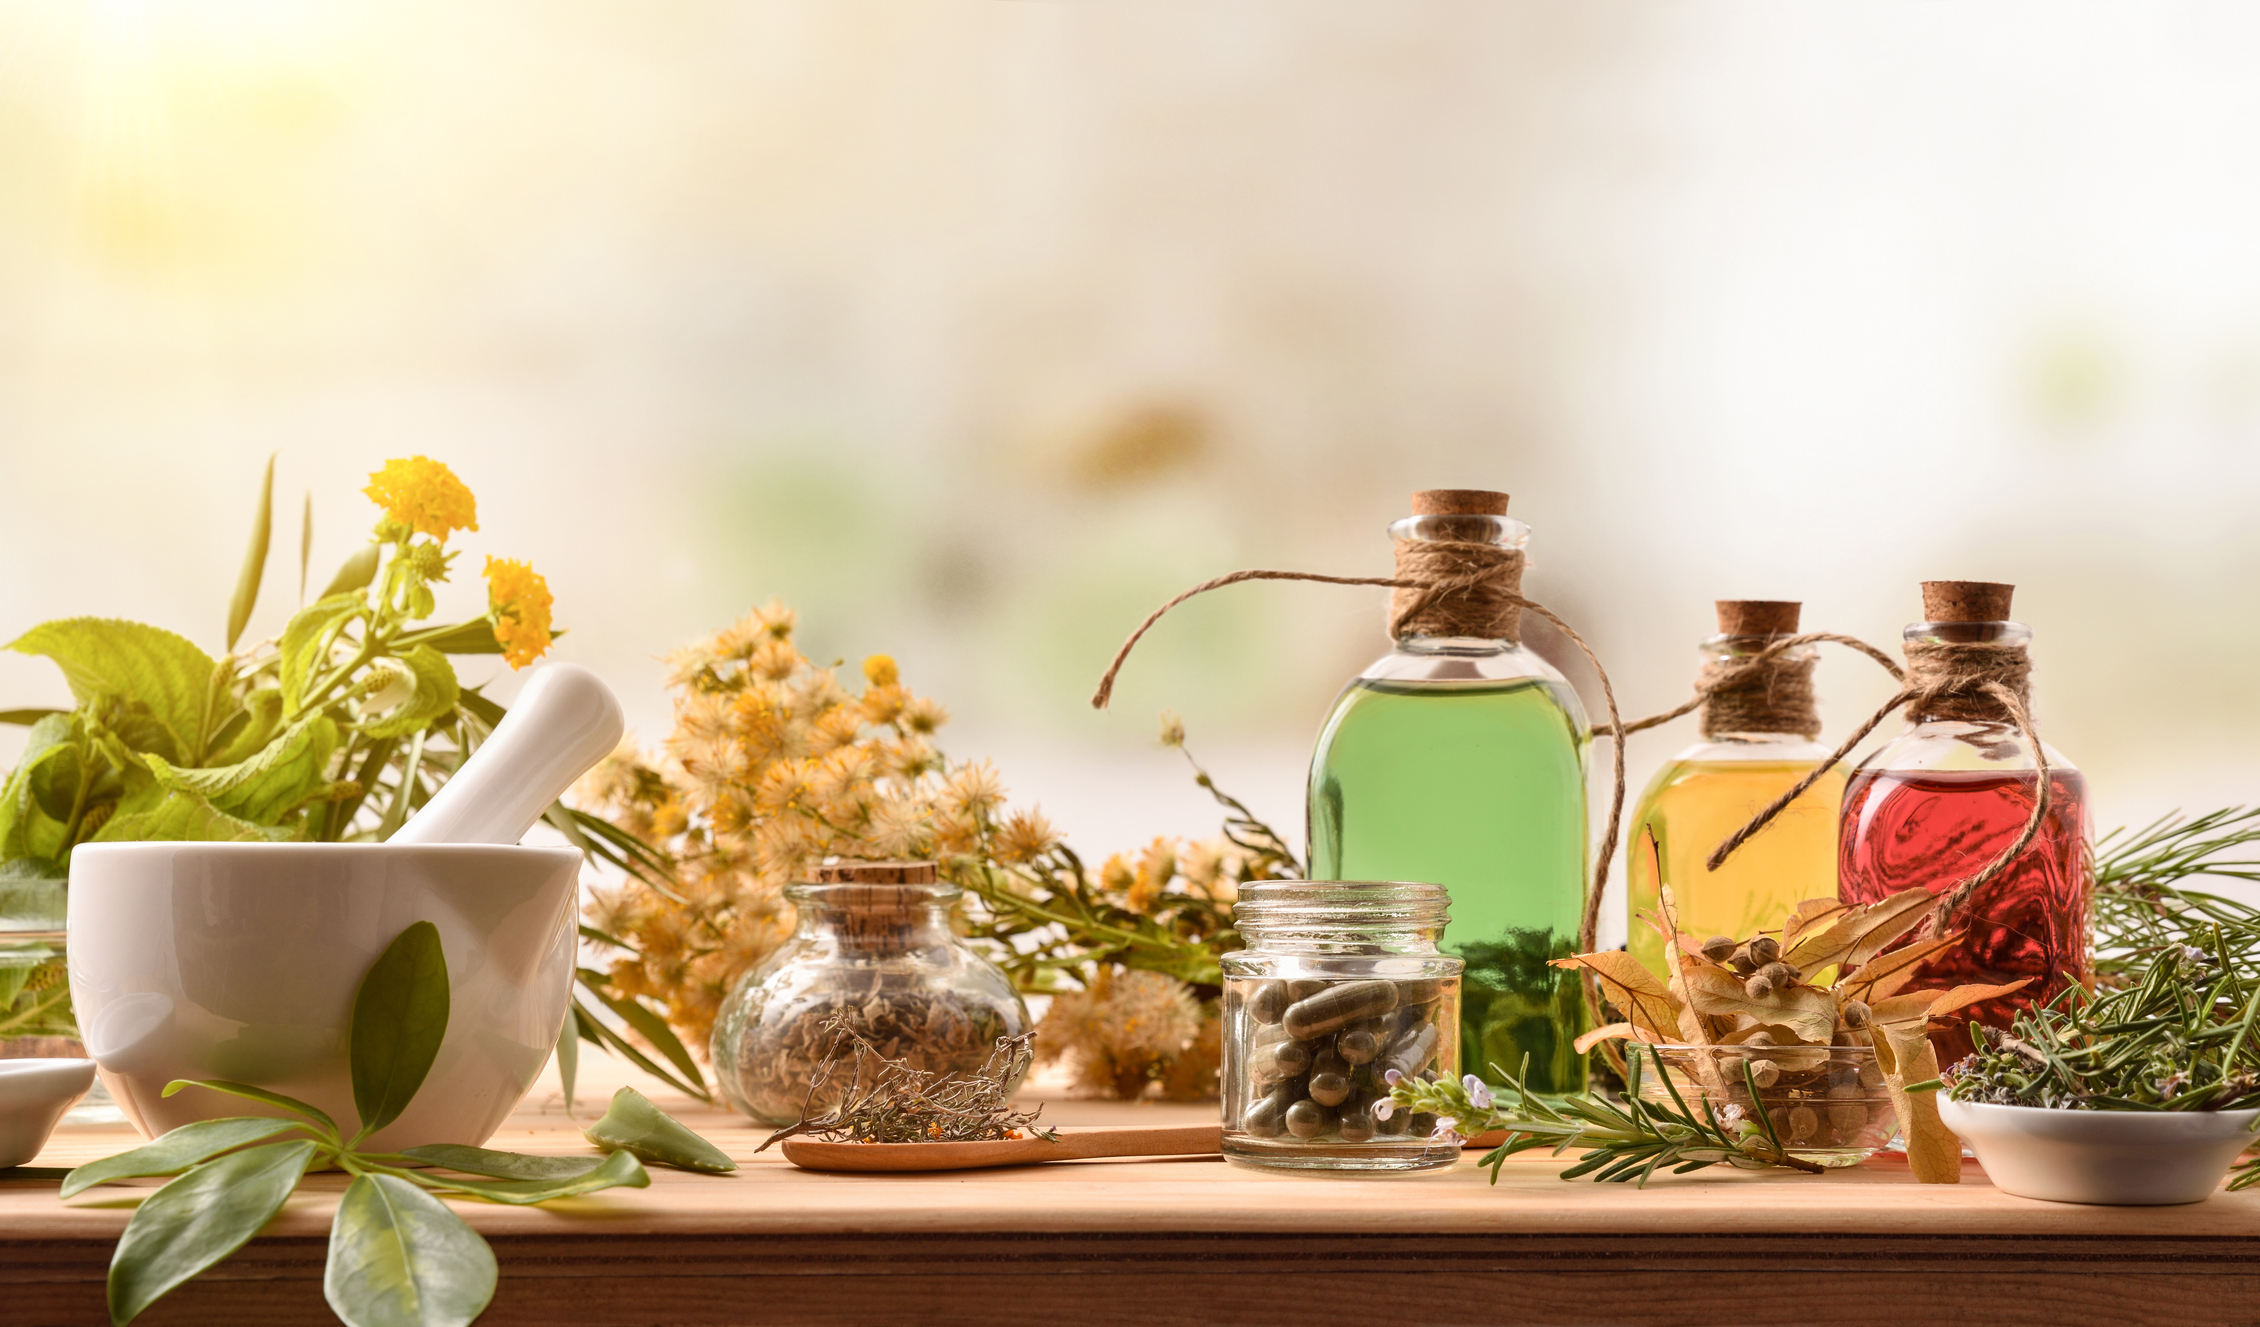 Living an Herbal Life: Crafting teas, tinctures and oils at home